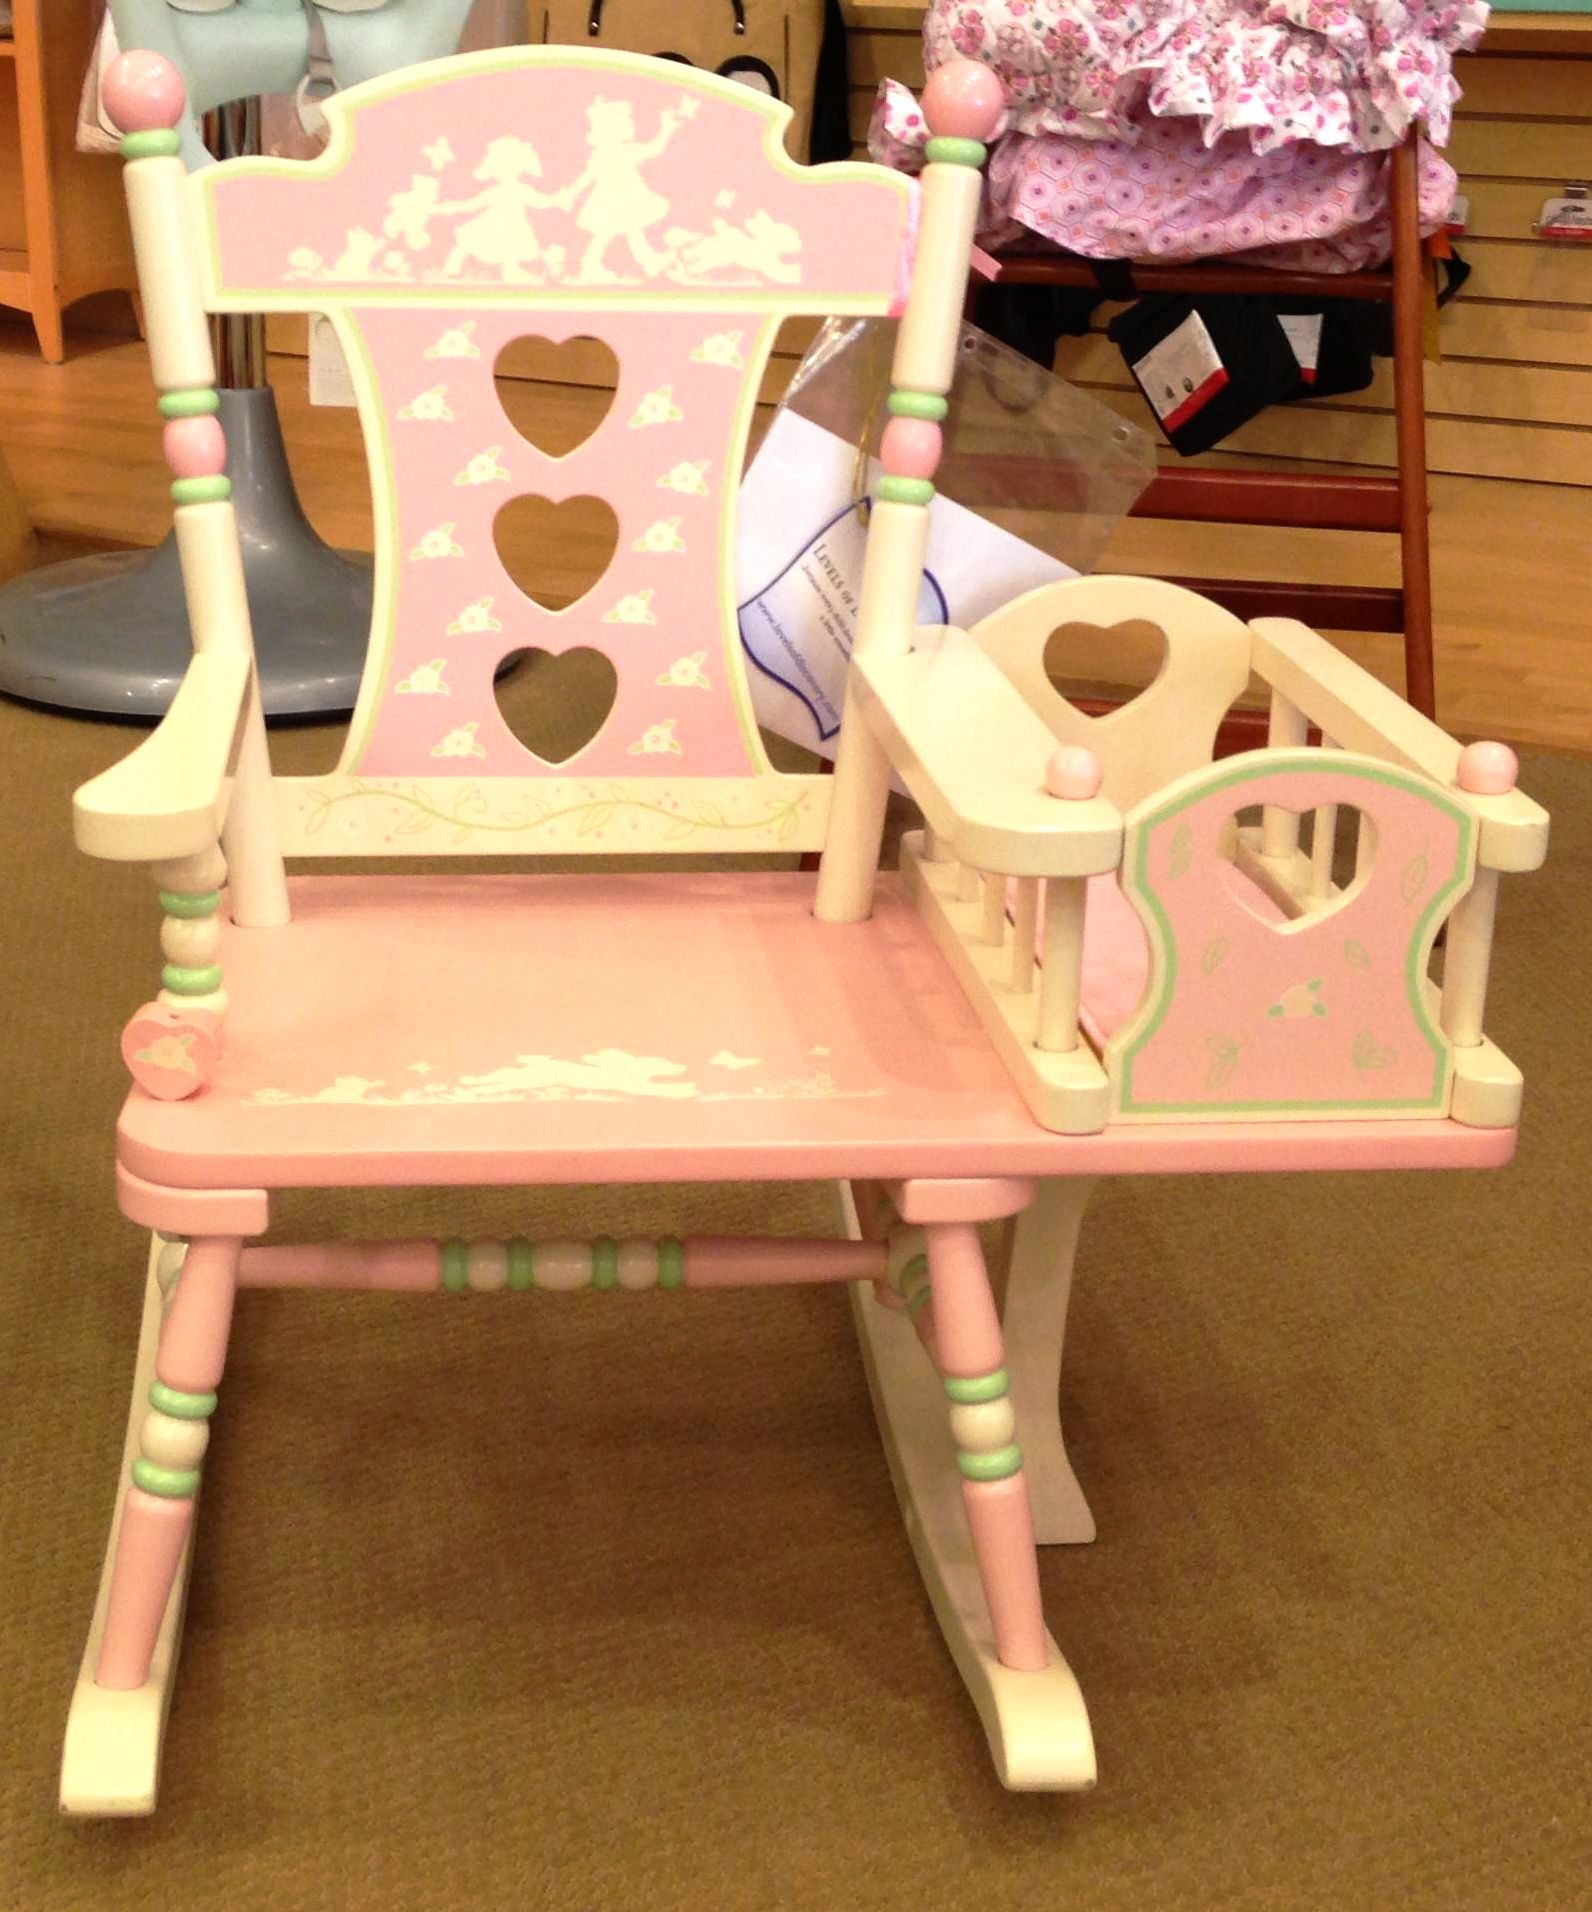 This pink chair with a small crib attached is one of